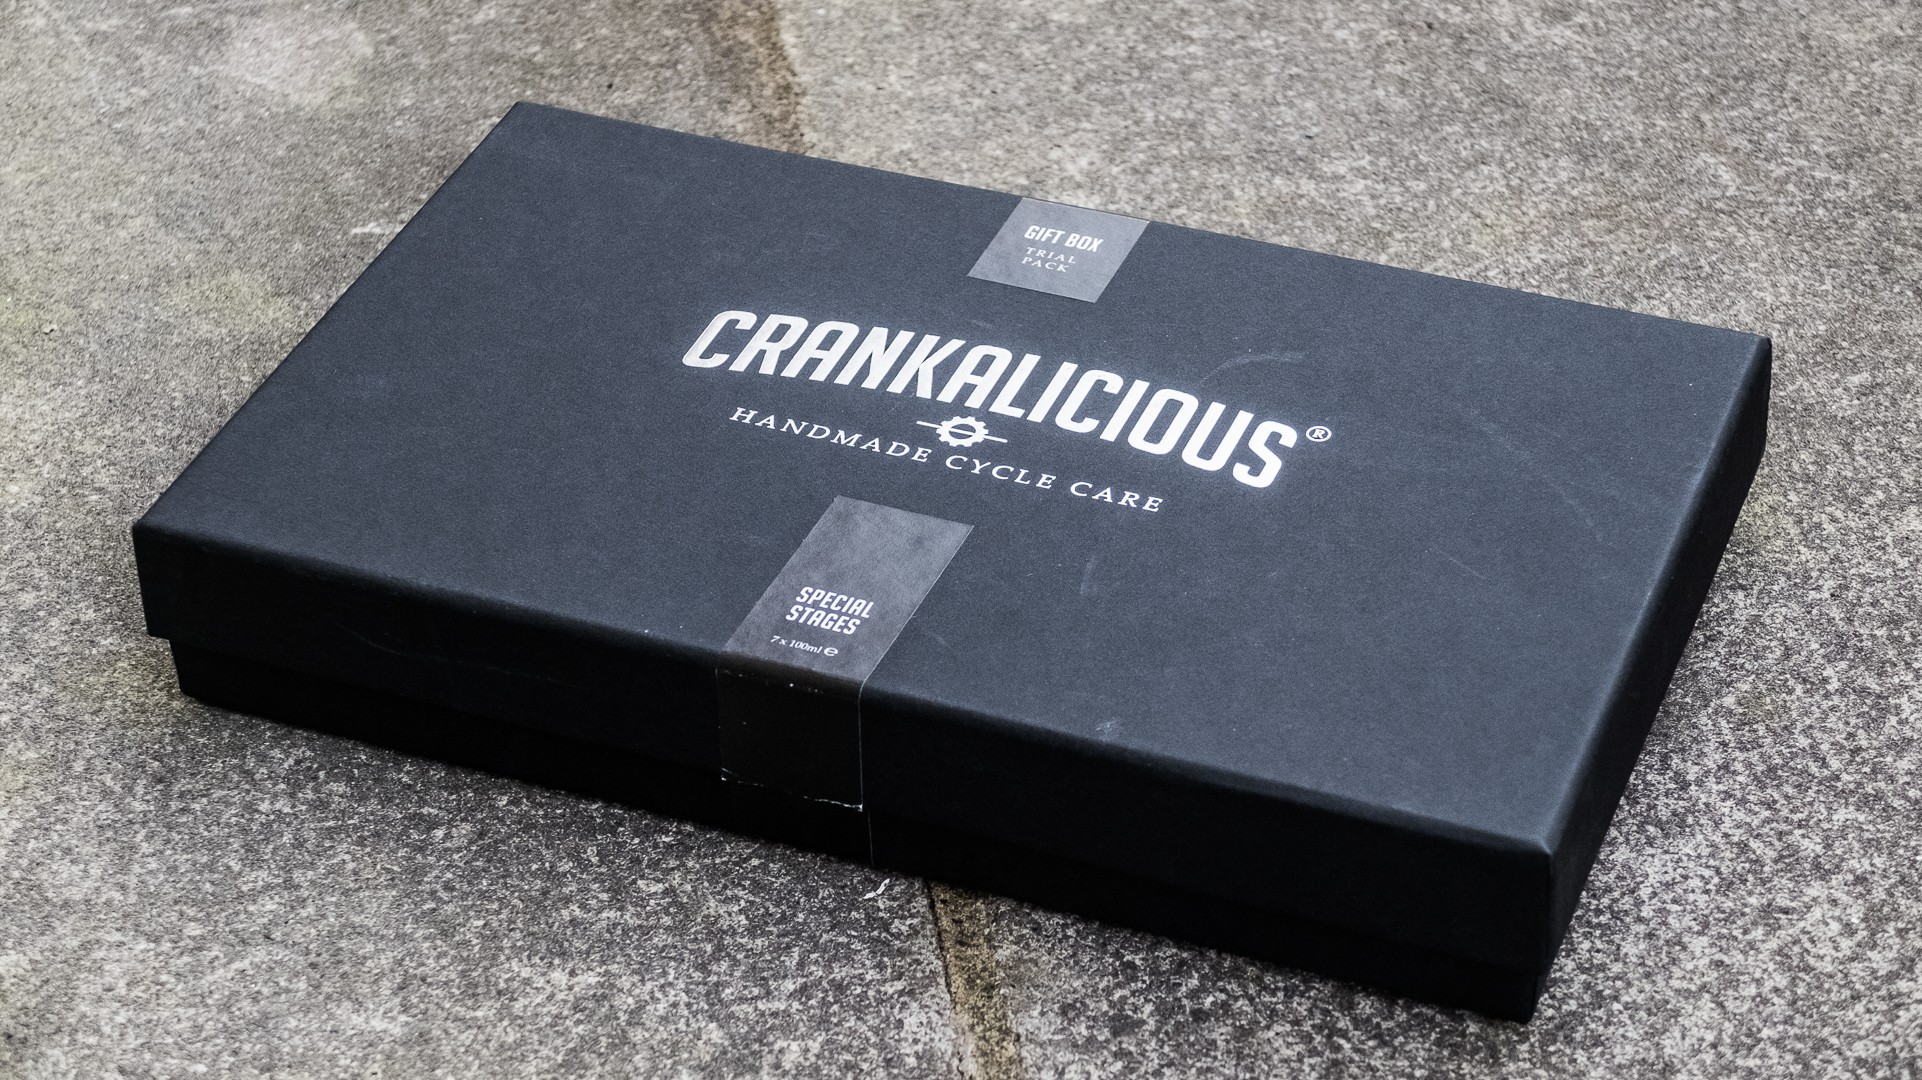 Is it a box of chocolate? Perhaps a gift of perfume inspired by that new bike smell?